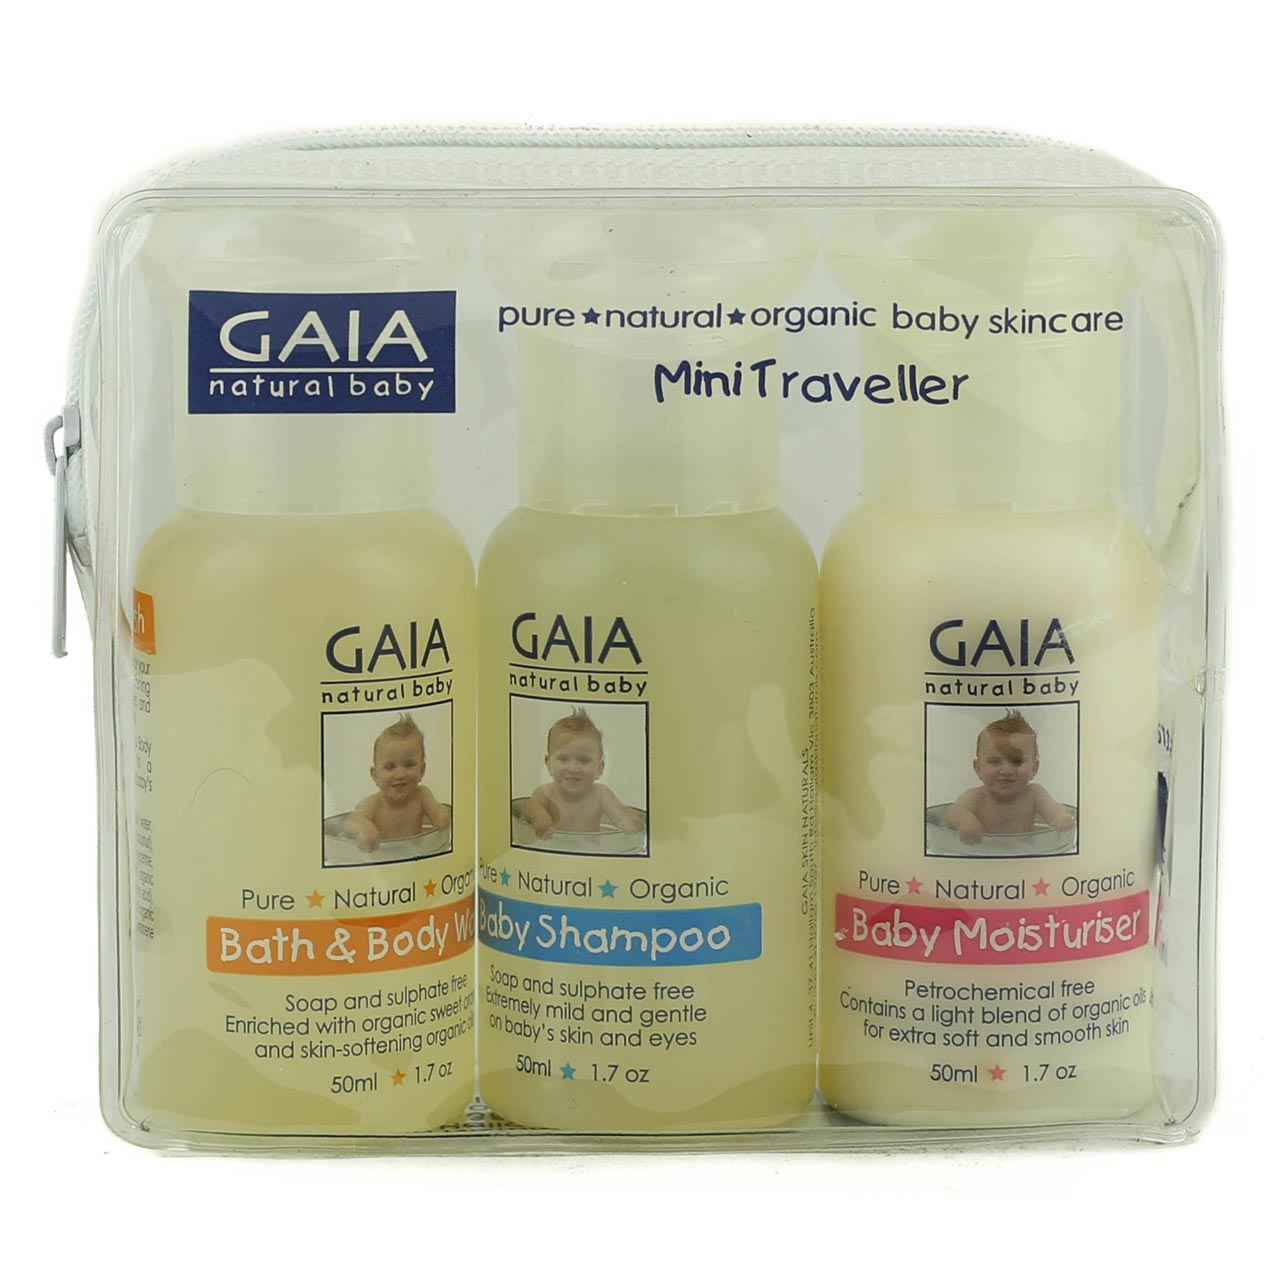 GAIA Natural Baby Mini Traveller Pack